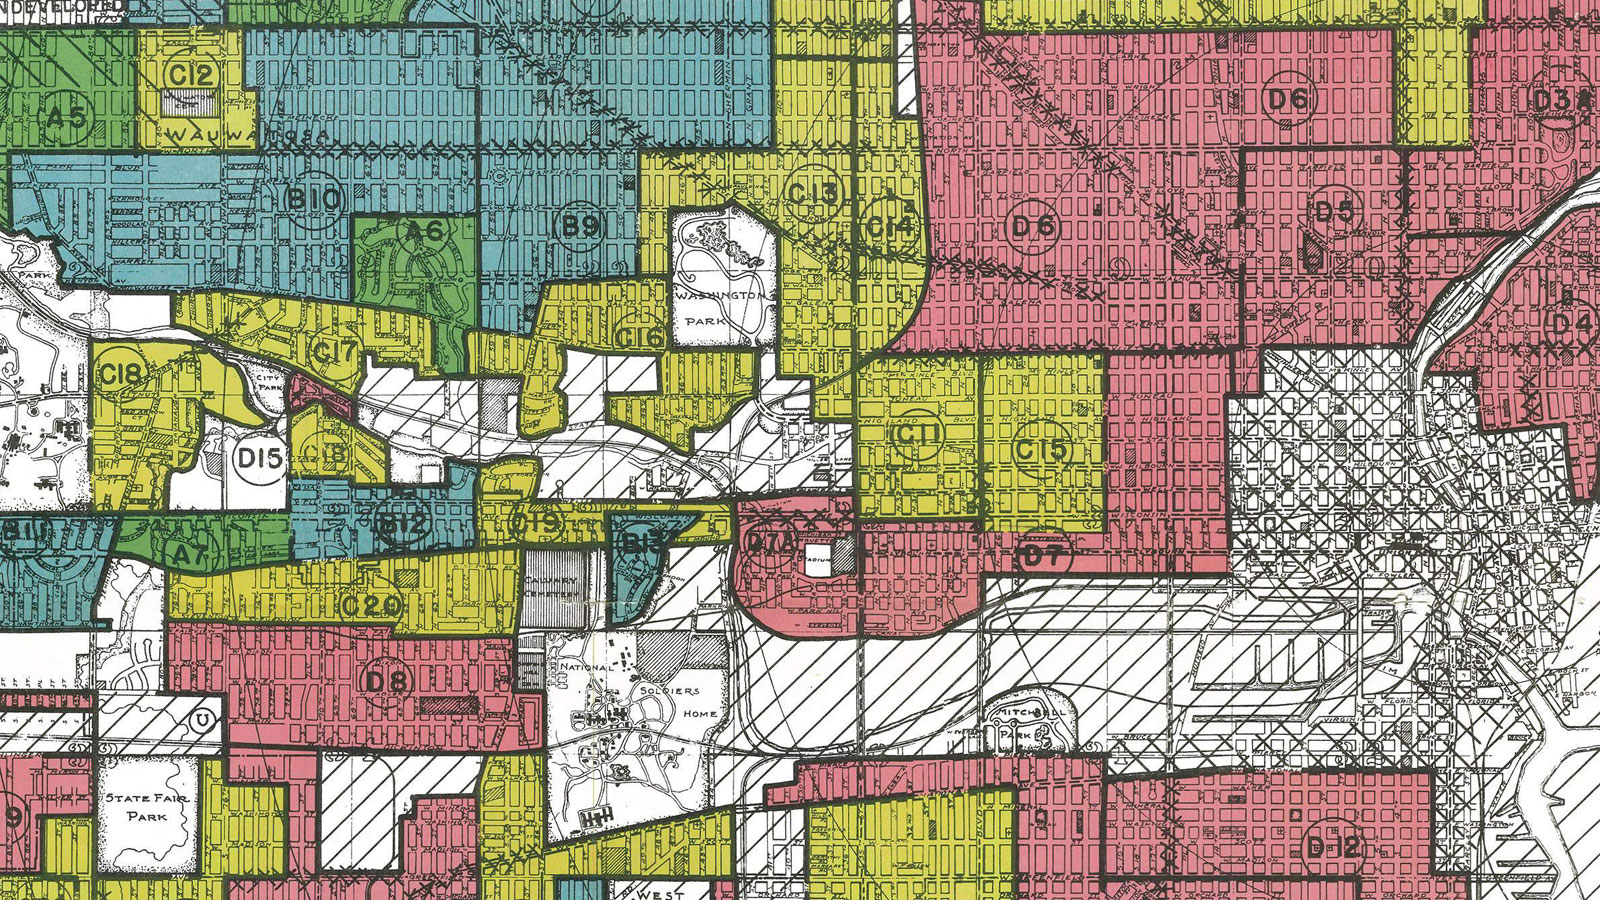 National Archive redlining map of Milwaukee